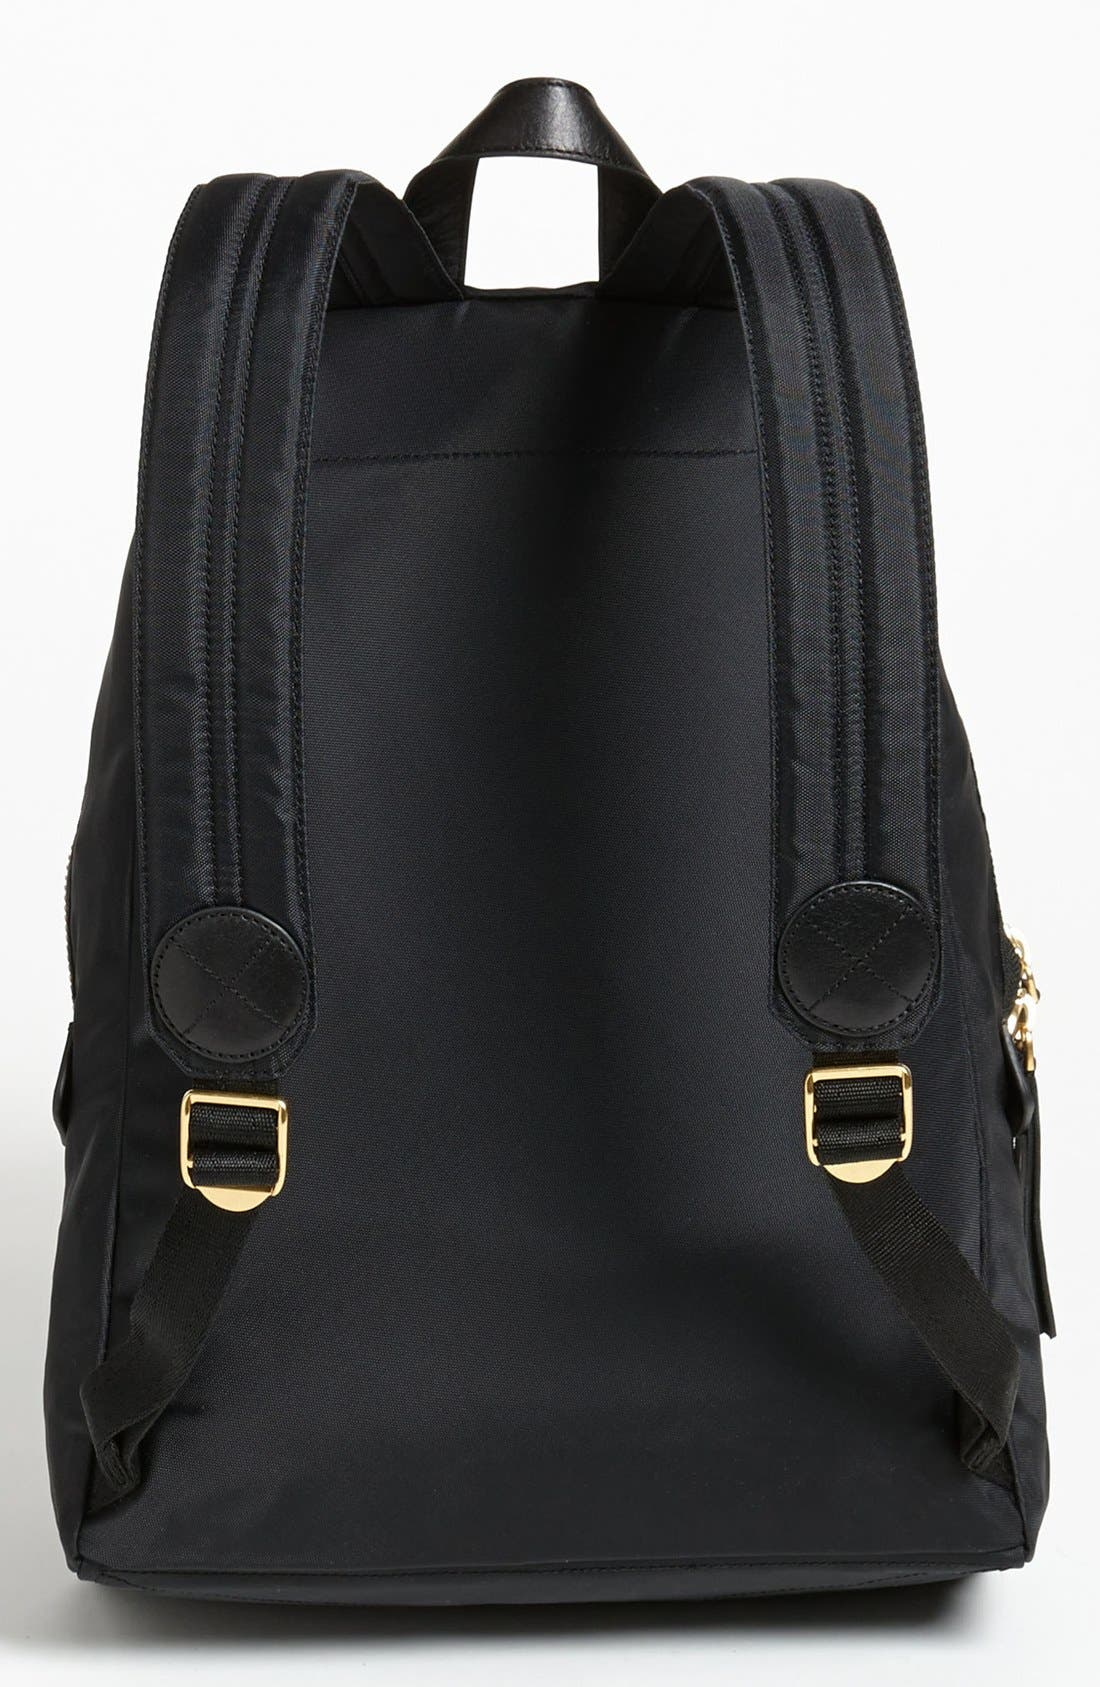 MARC BY MARC JACOBS 'Domo Arigato Packrat' Backpack,                             Alternate thumbnail 5, color,                             001